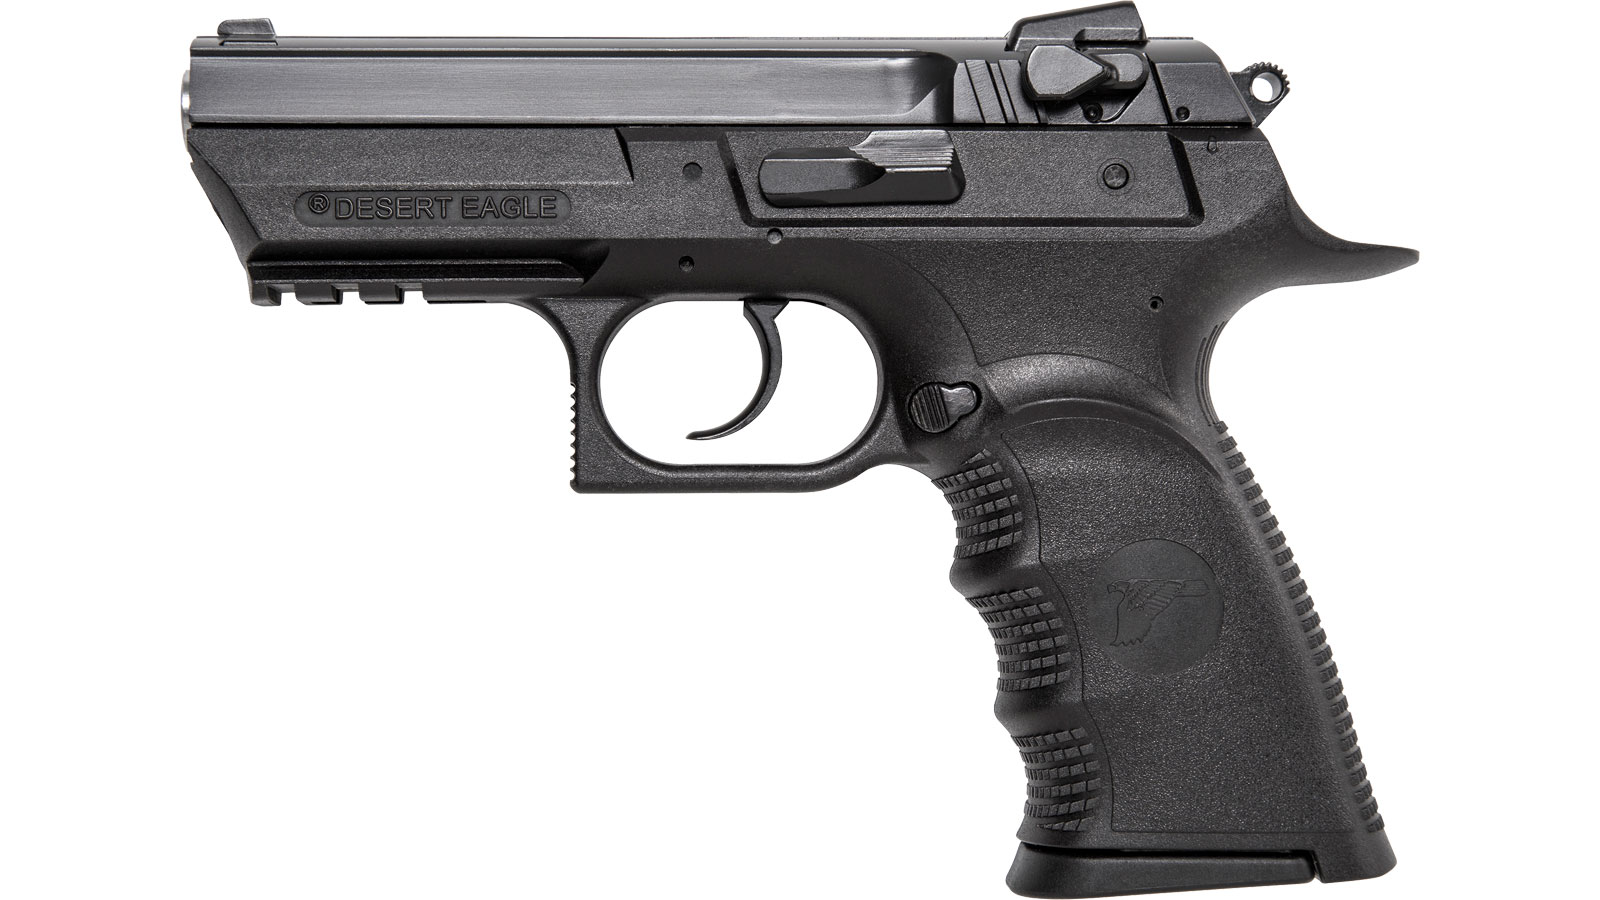 Magnum Research BE94133RSL Baby Desert Eagle III 40 Smith & Wesson (S&W) Single Double 3.8 12+1 Black Carbon Steel Slide in.